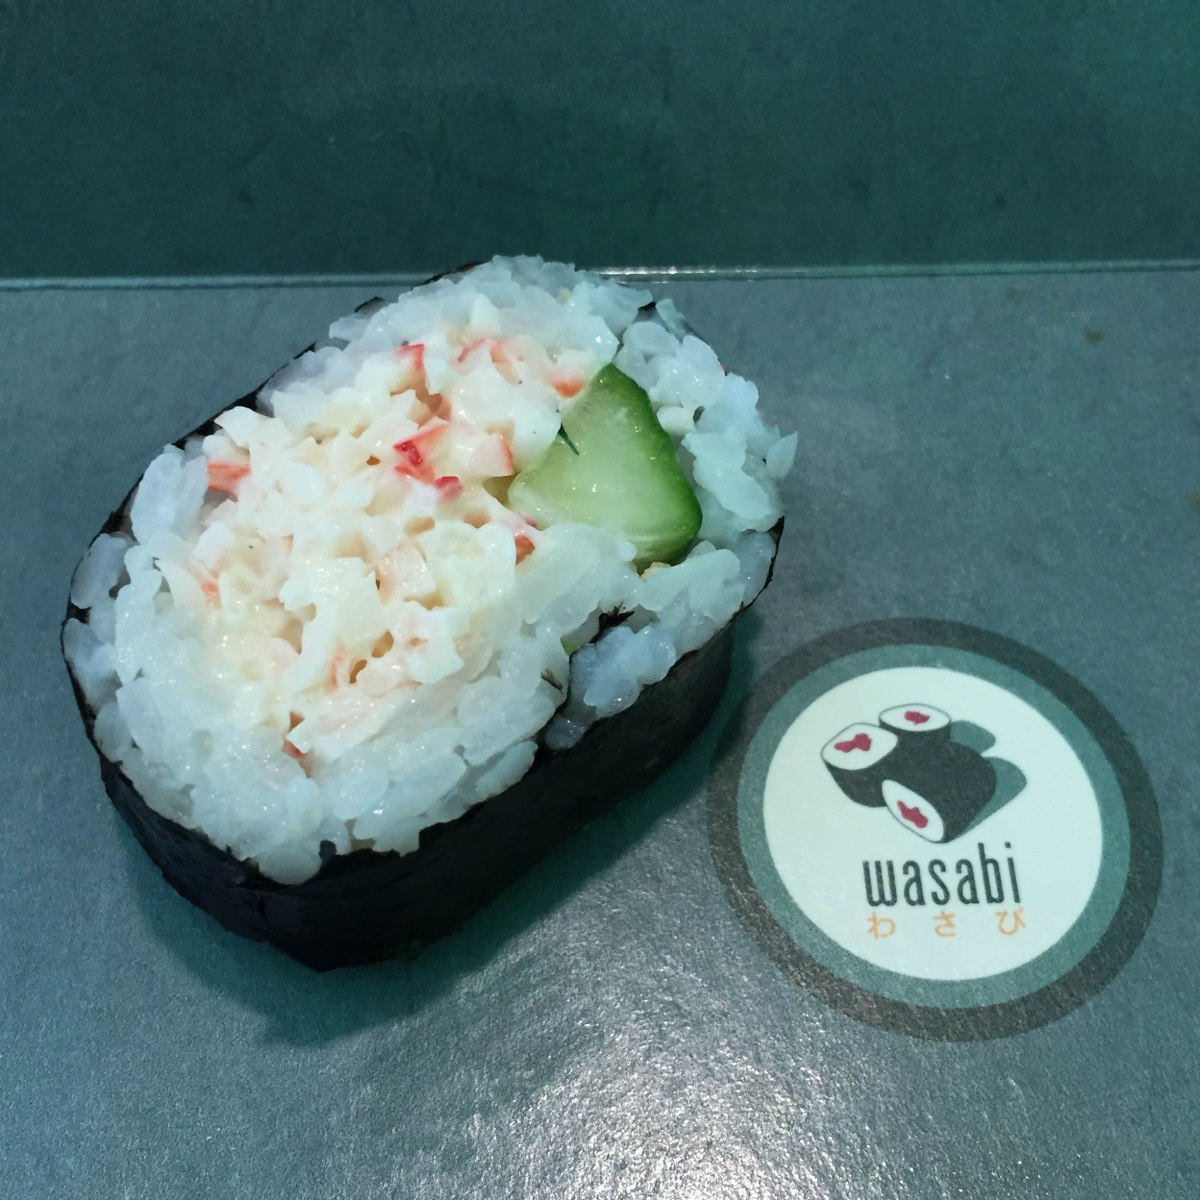 A close up photograph of a crabmeat and cucumber roll.